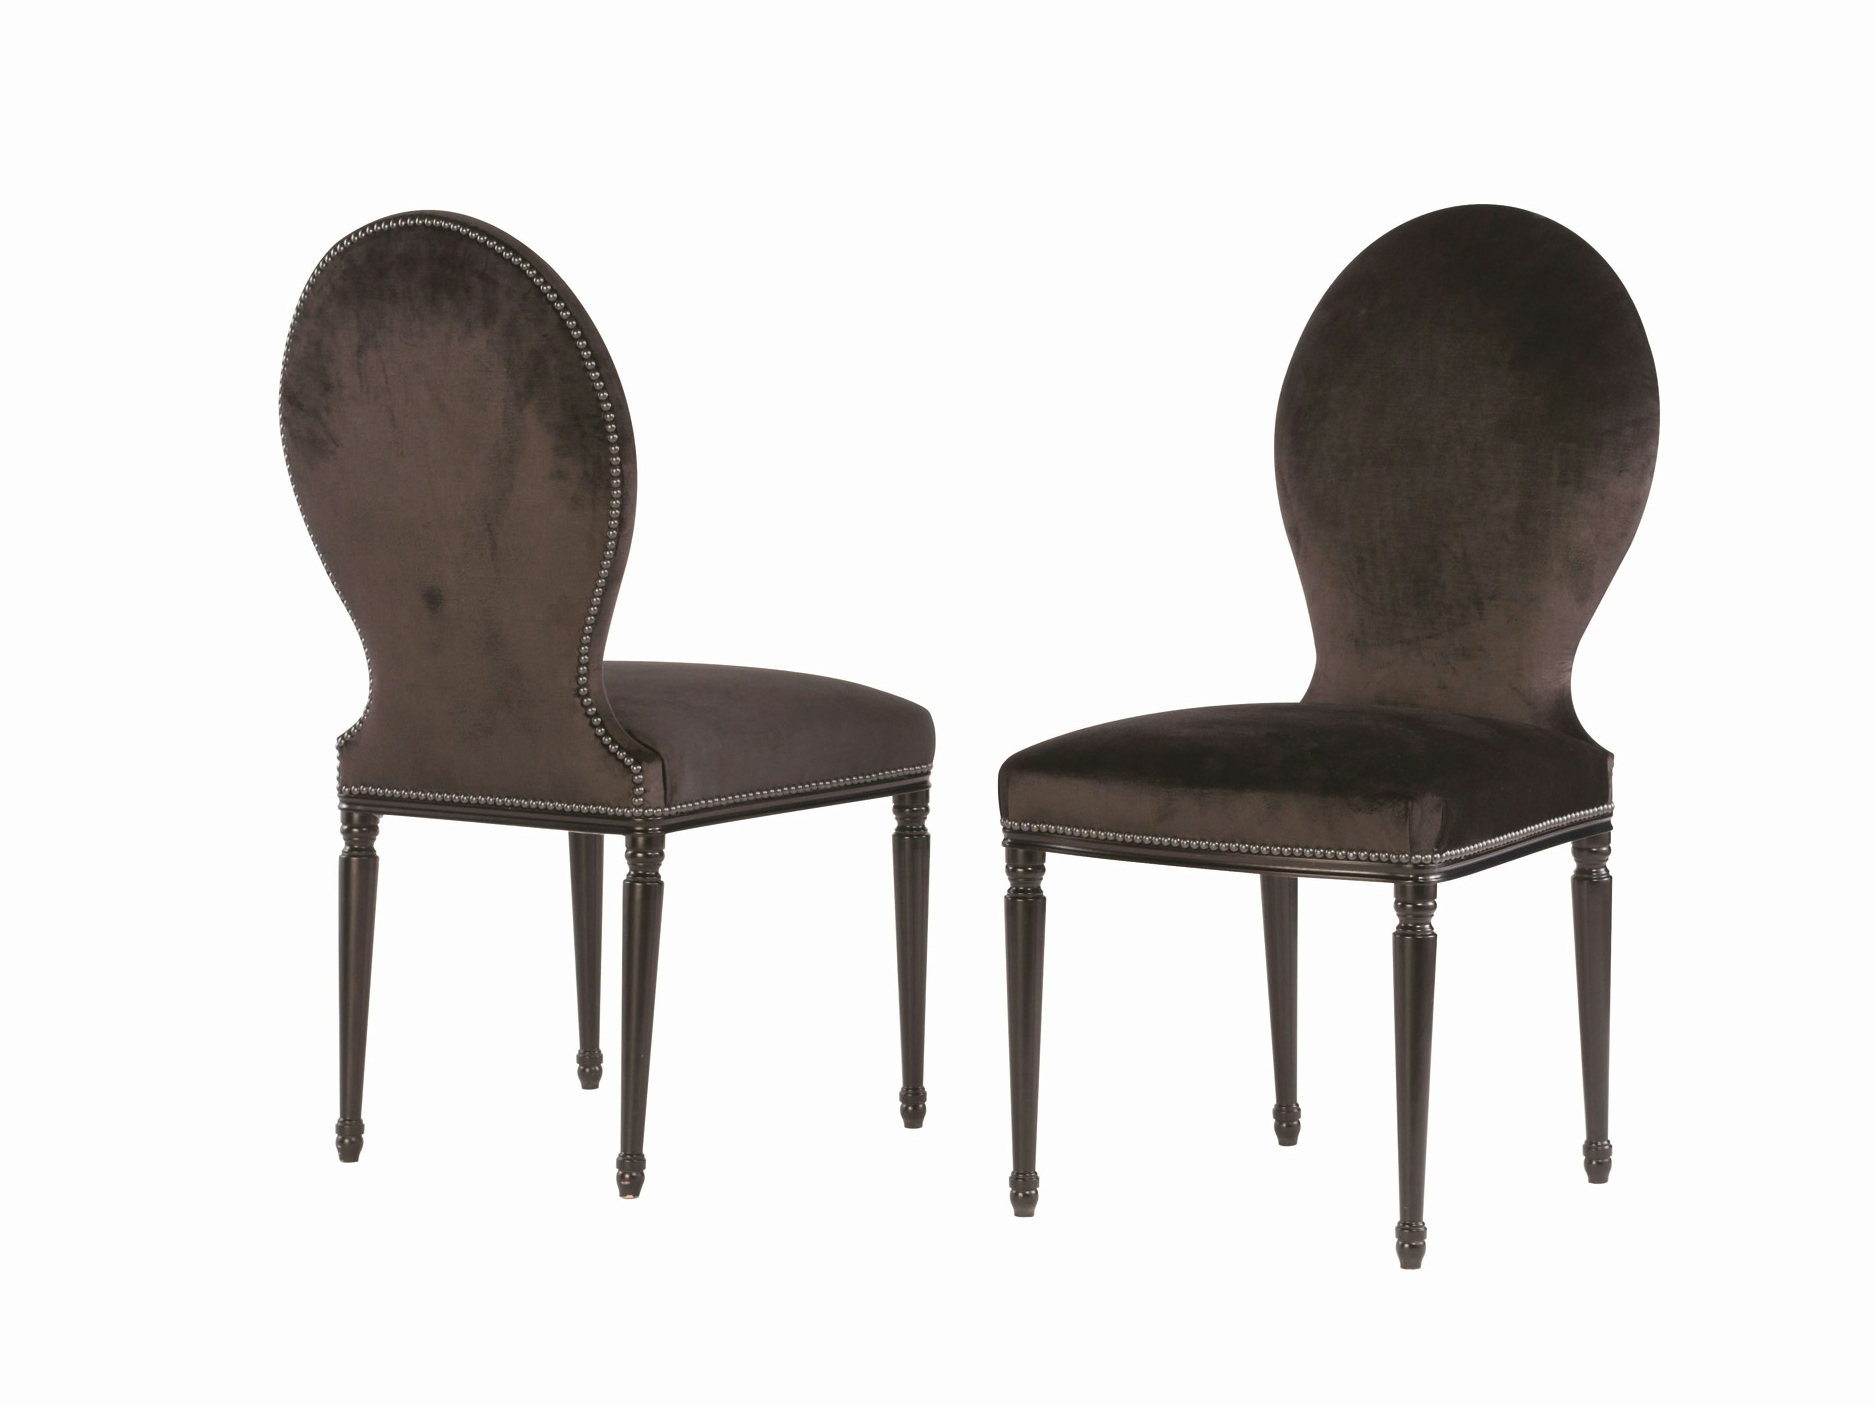 chaises roche bobois soldes table de lit. Black Bedroom Furniture Sets. Home Design Ideas